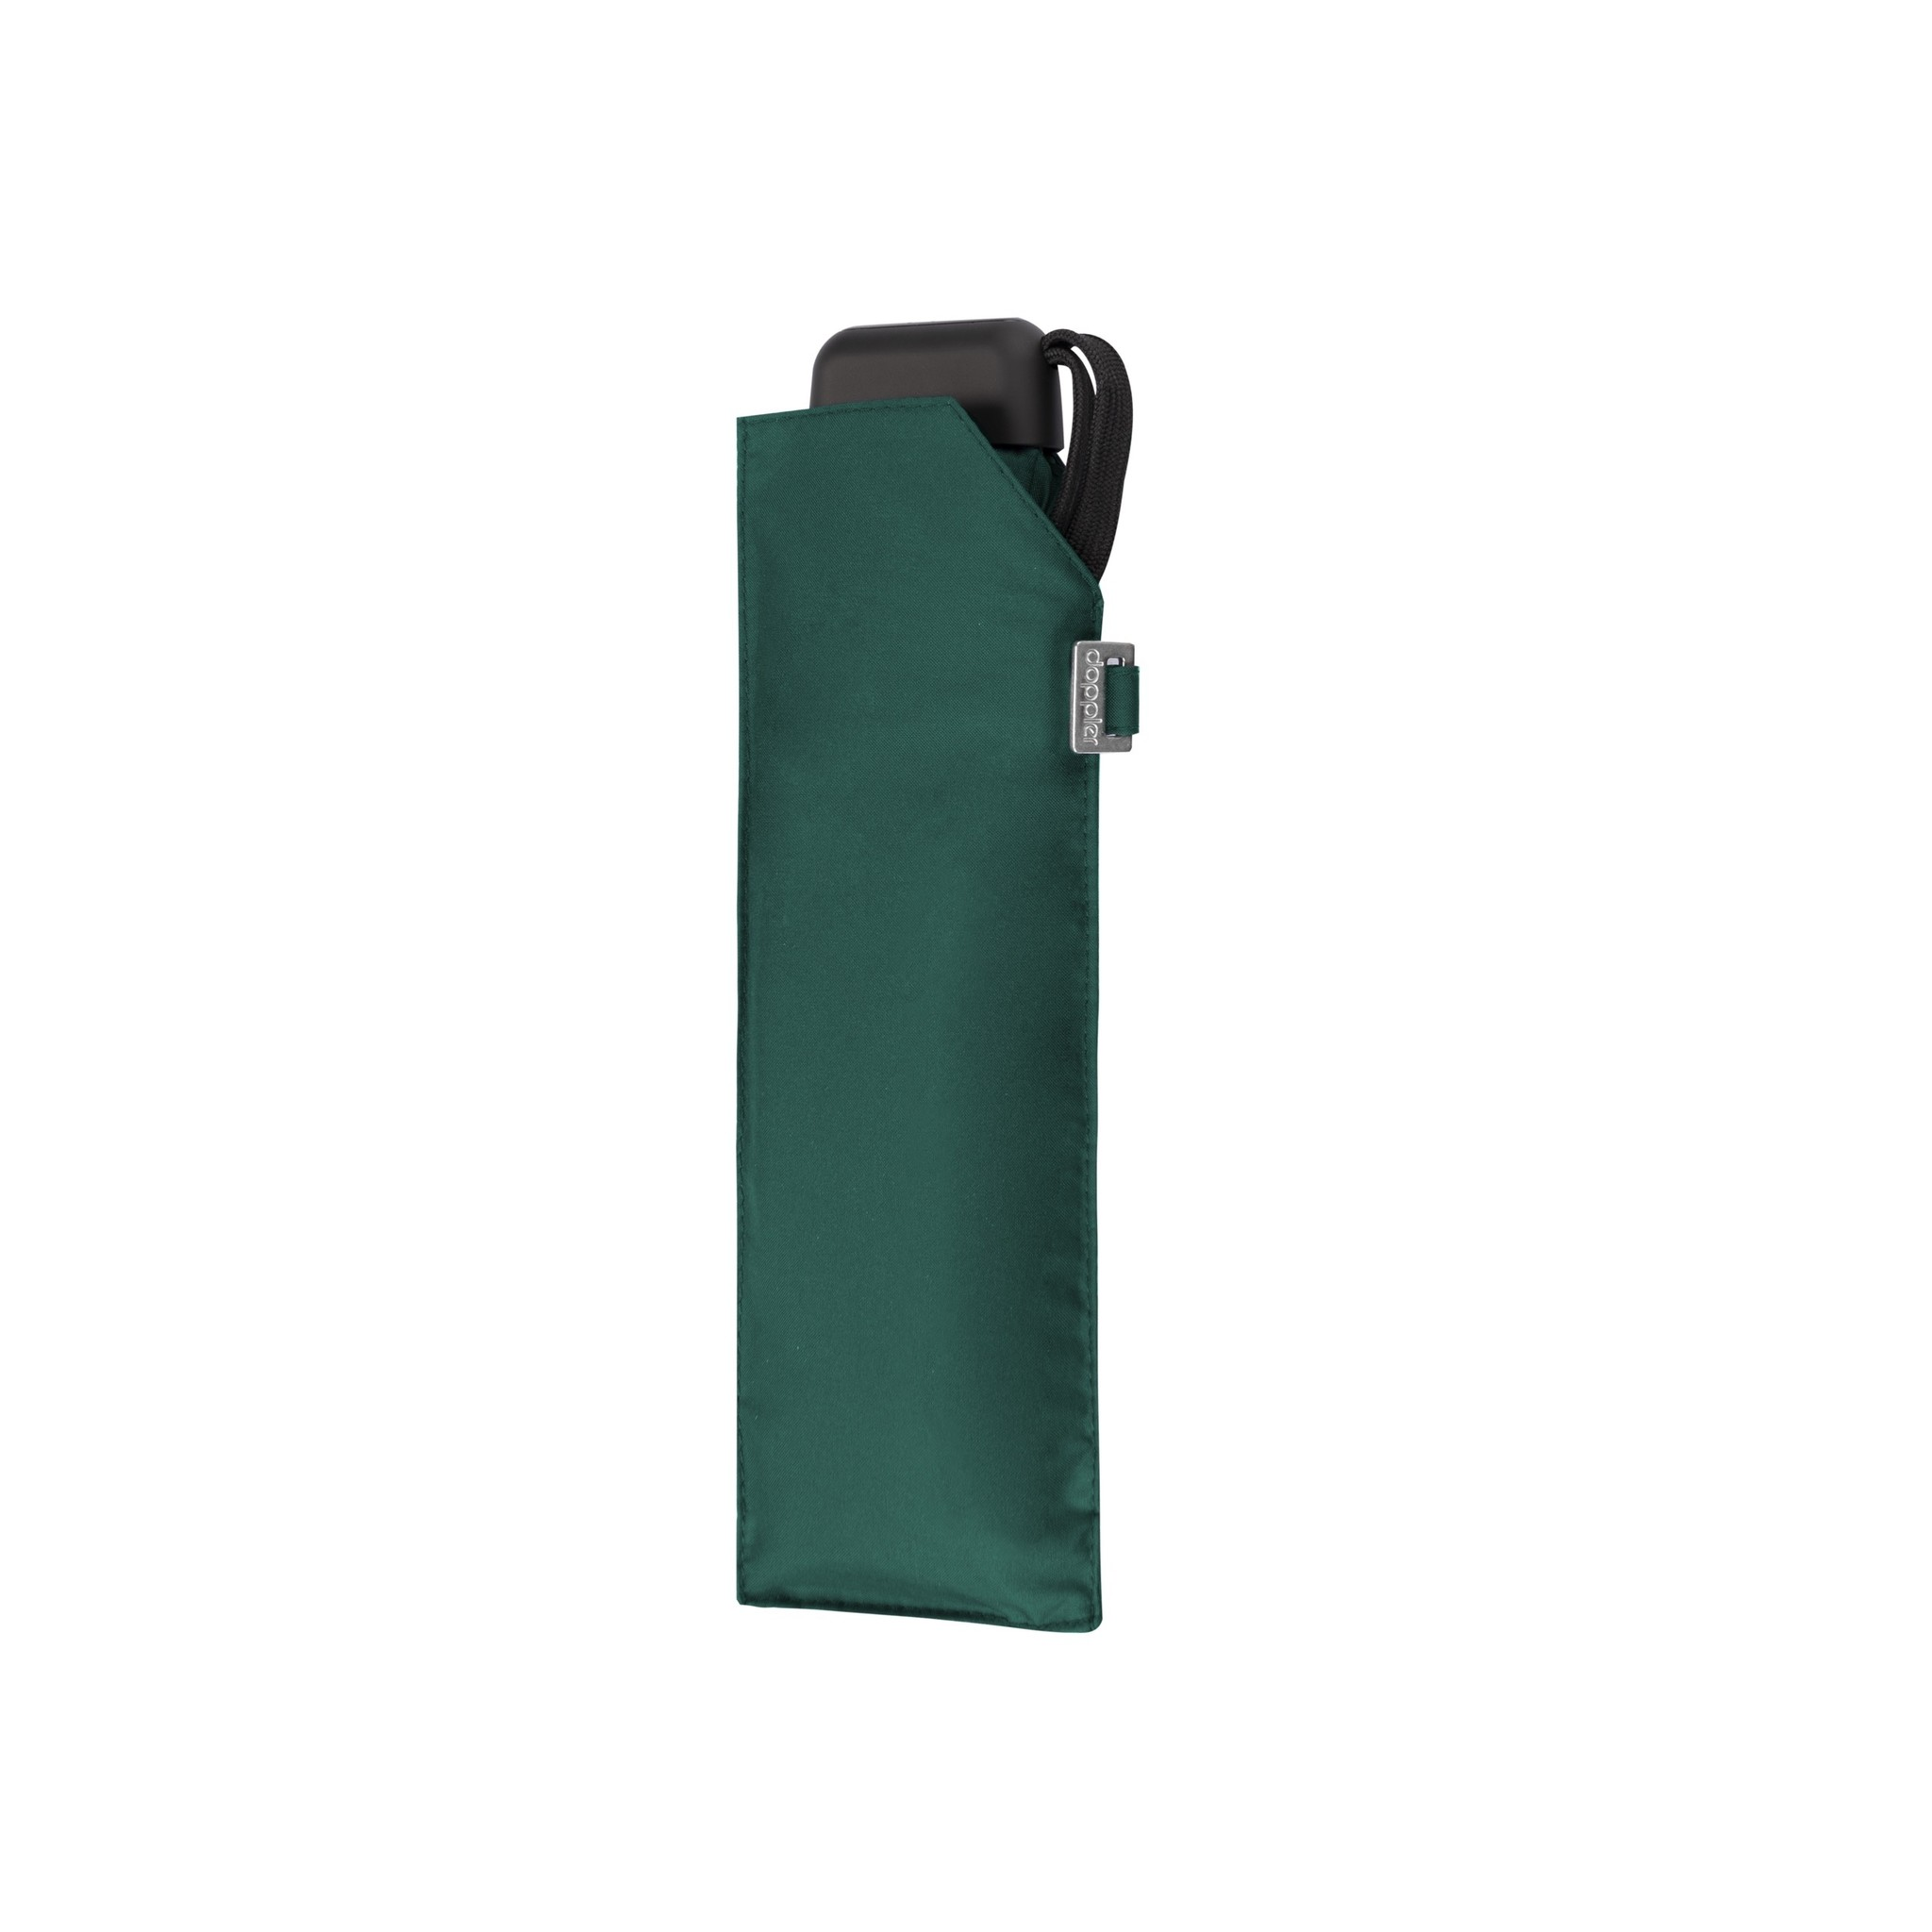 Doppler Doppler Carbonsteel mini slim - Evergreen - zeer lichte platte paraplu